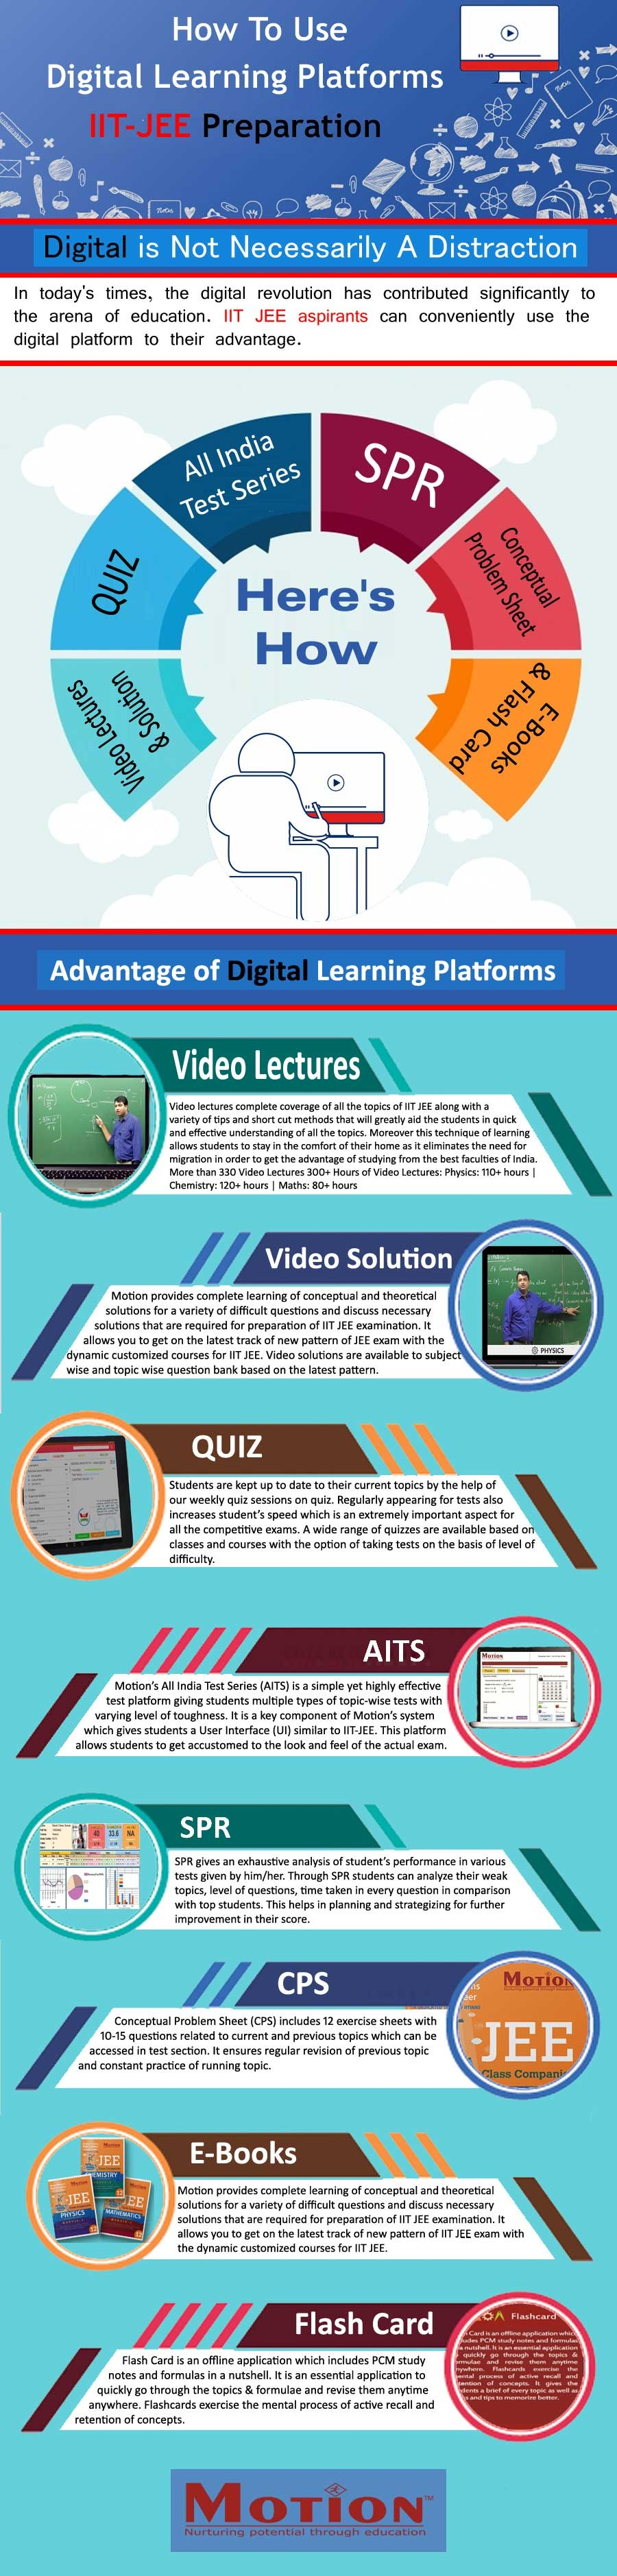 How to Use Digital Learning Platforms for IIT JEE Preparation [Infographic]